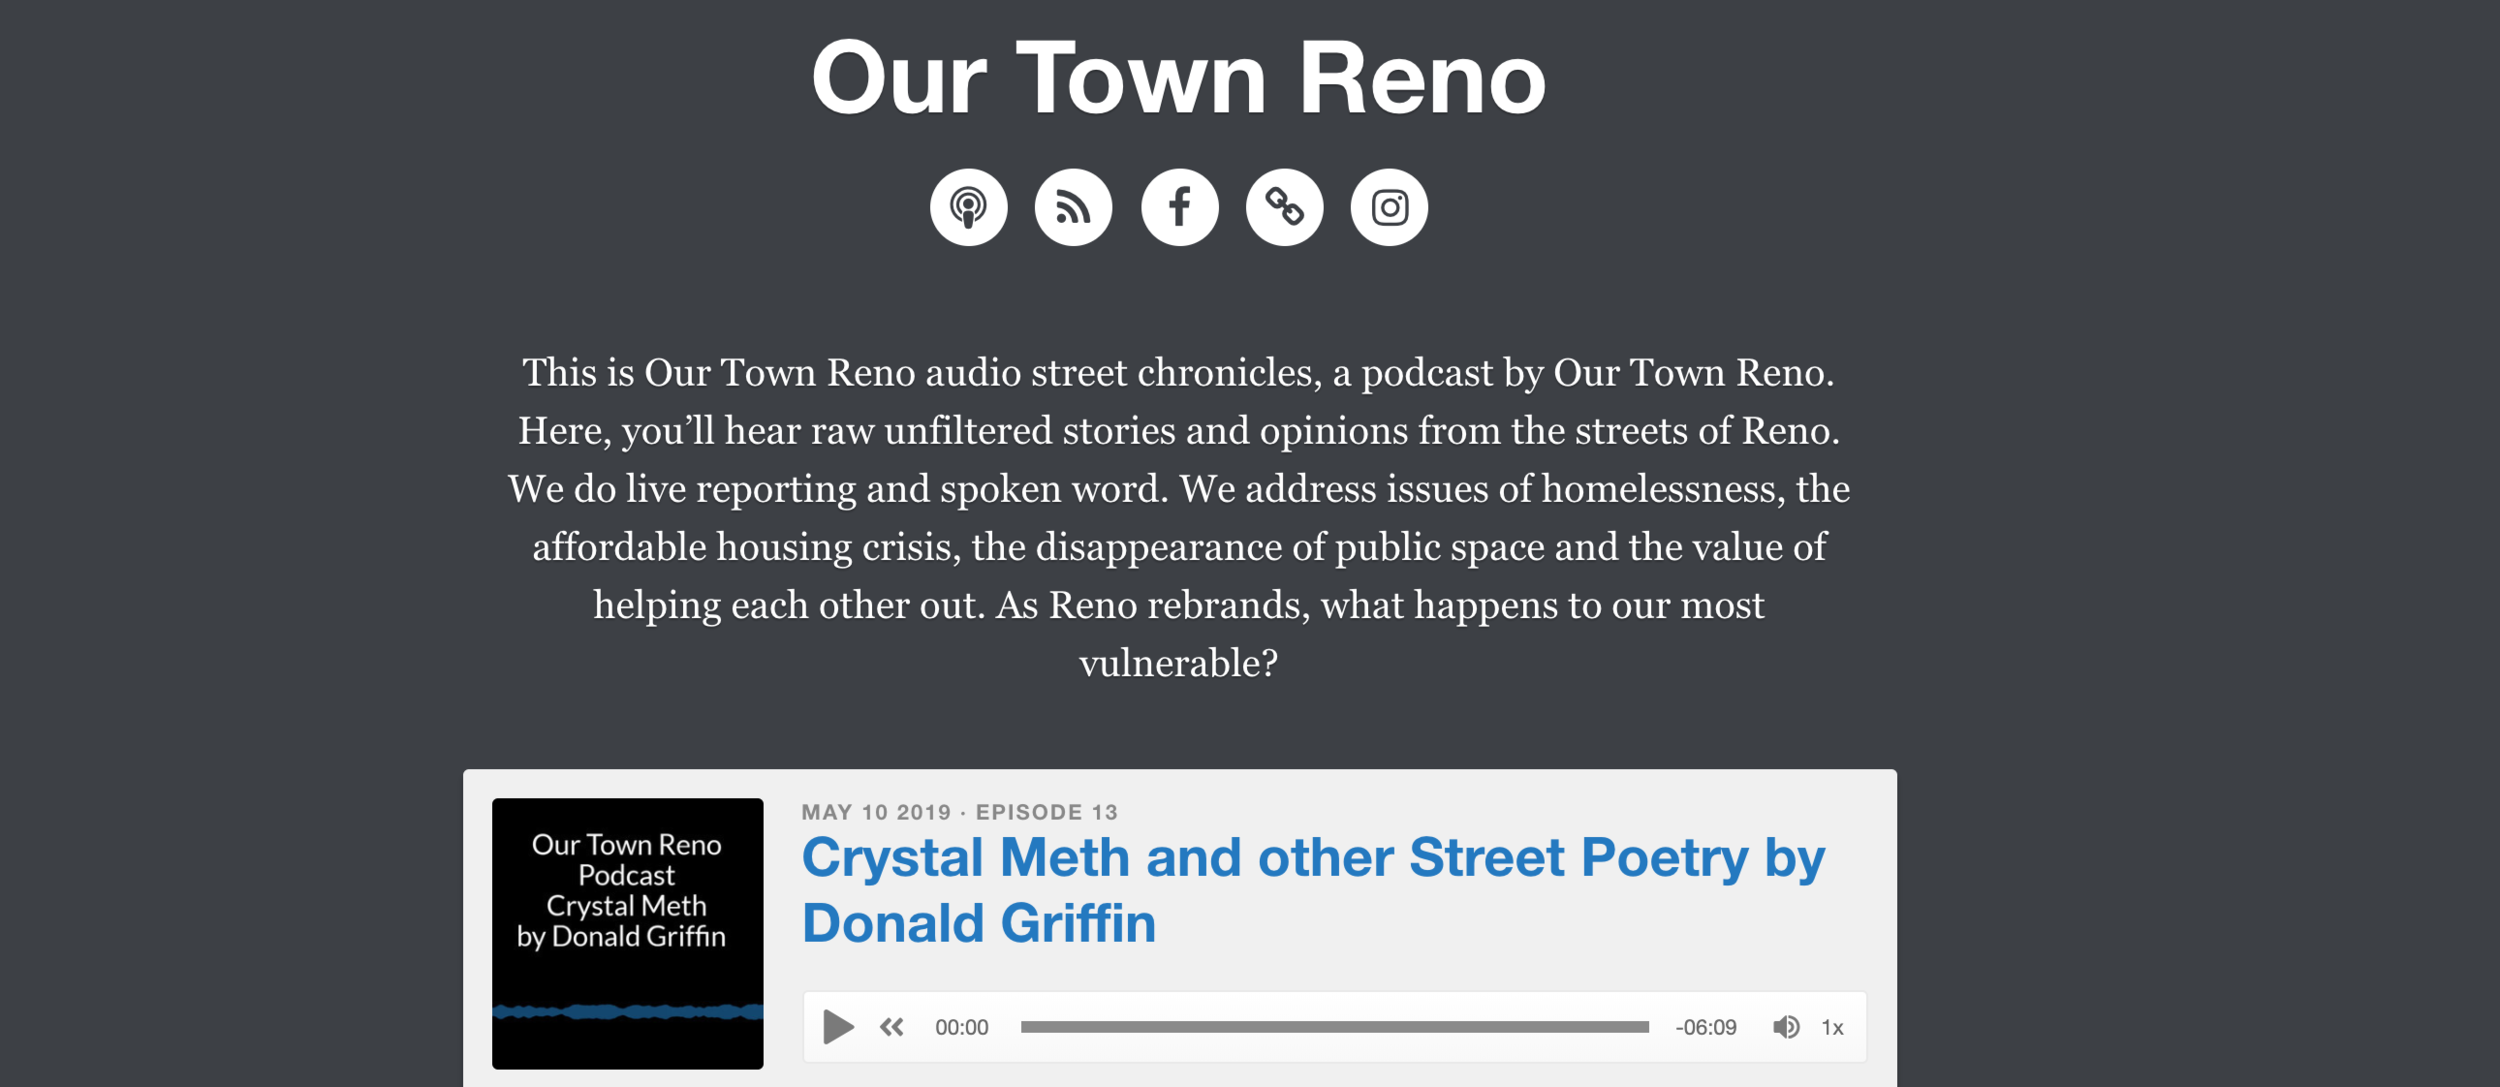 Poetry written and read by Donald Griffin is on the Our Town Reno podcast here:  https://ourtownreno.simplecast.fm/a7e4a84f